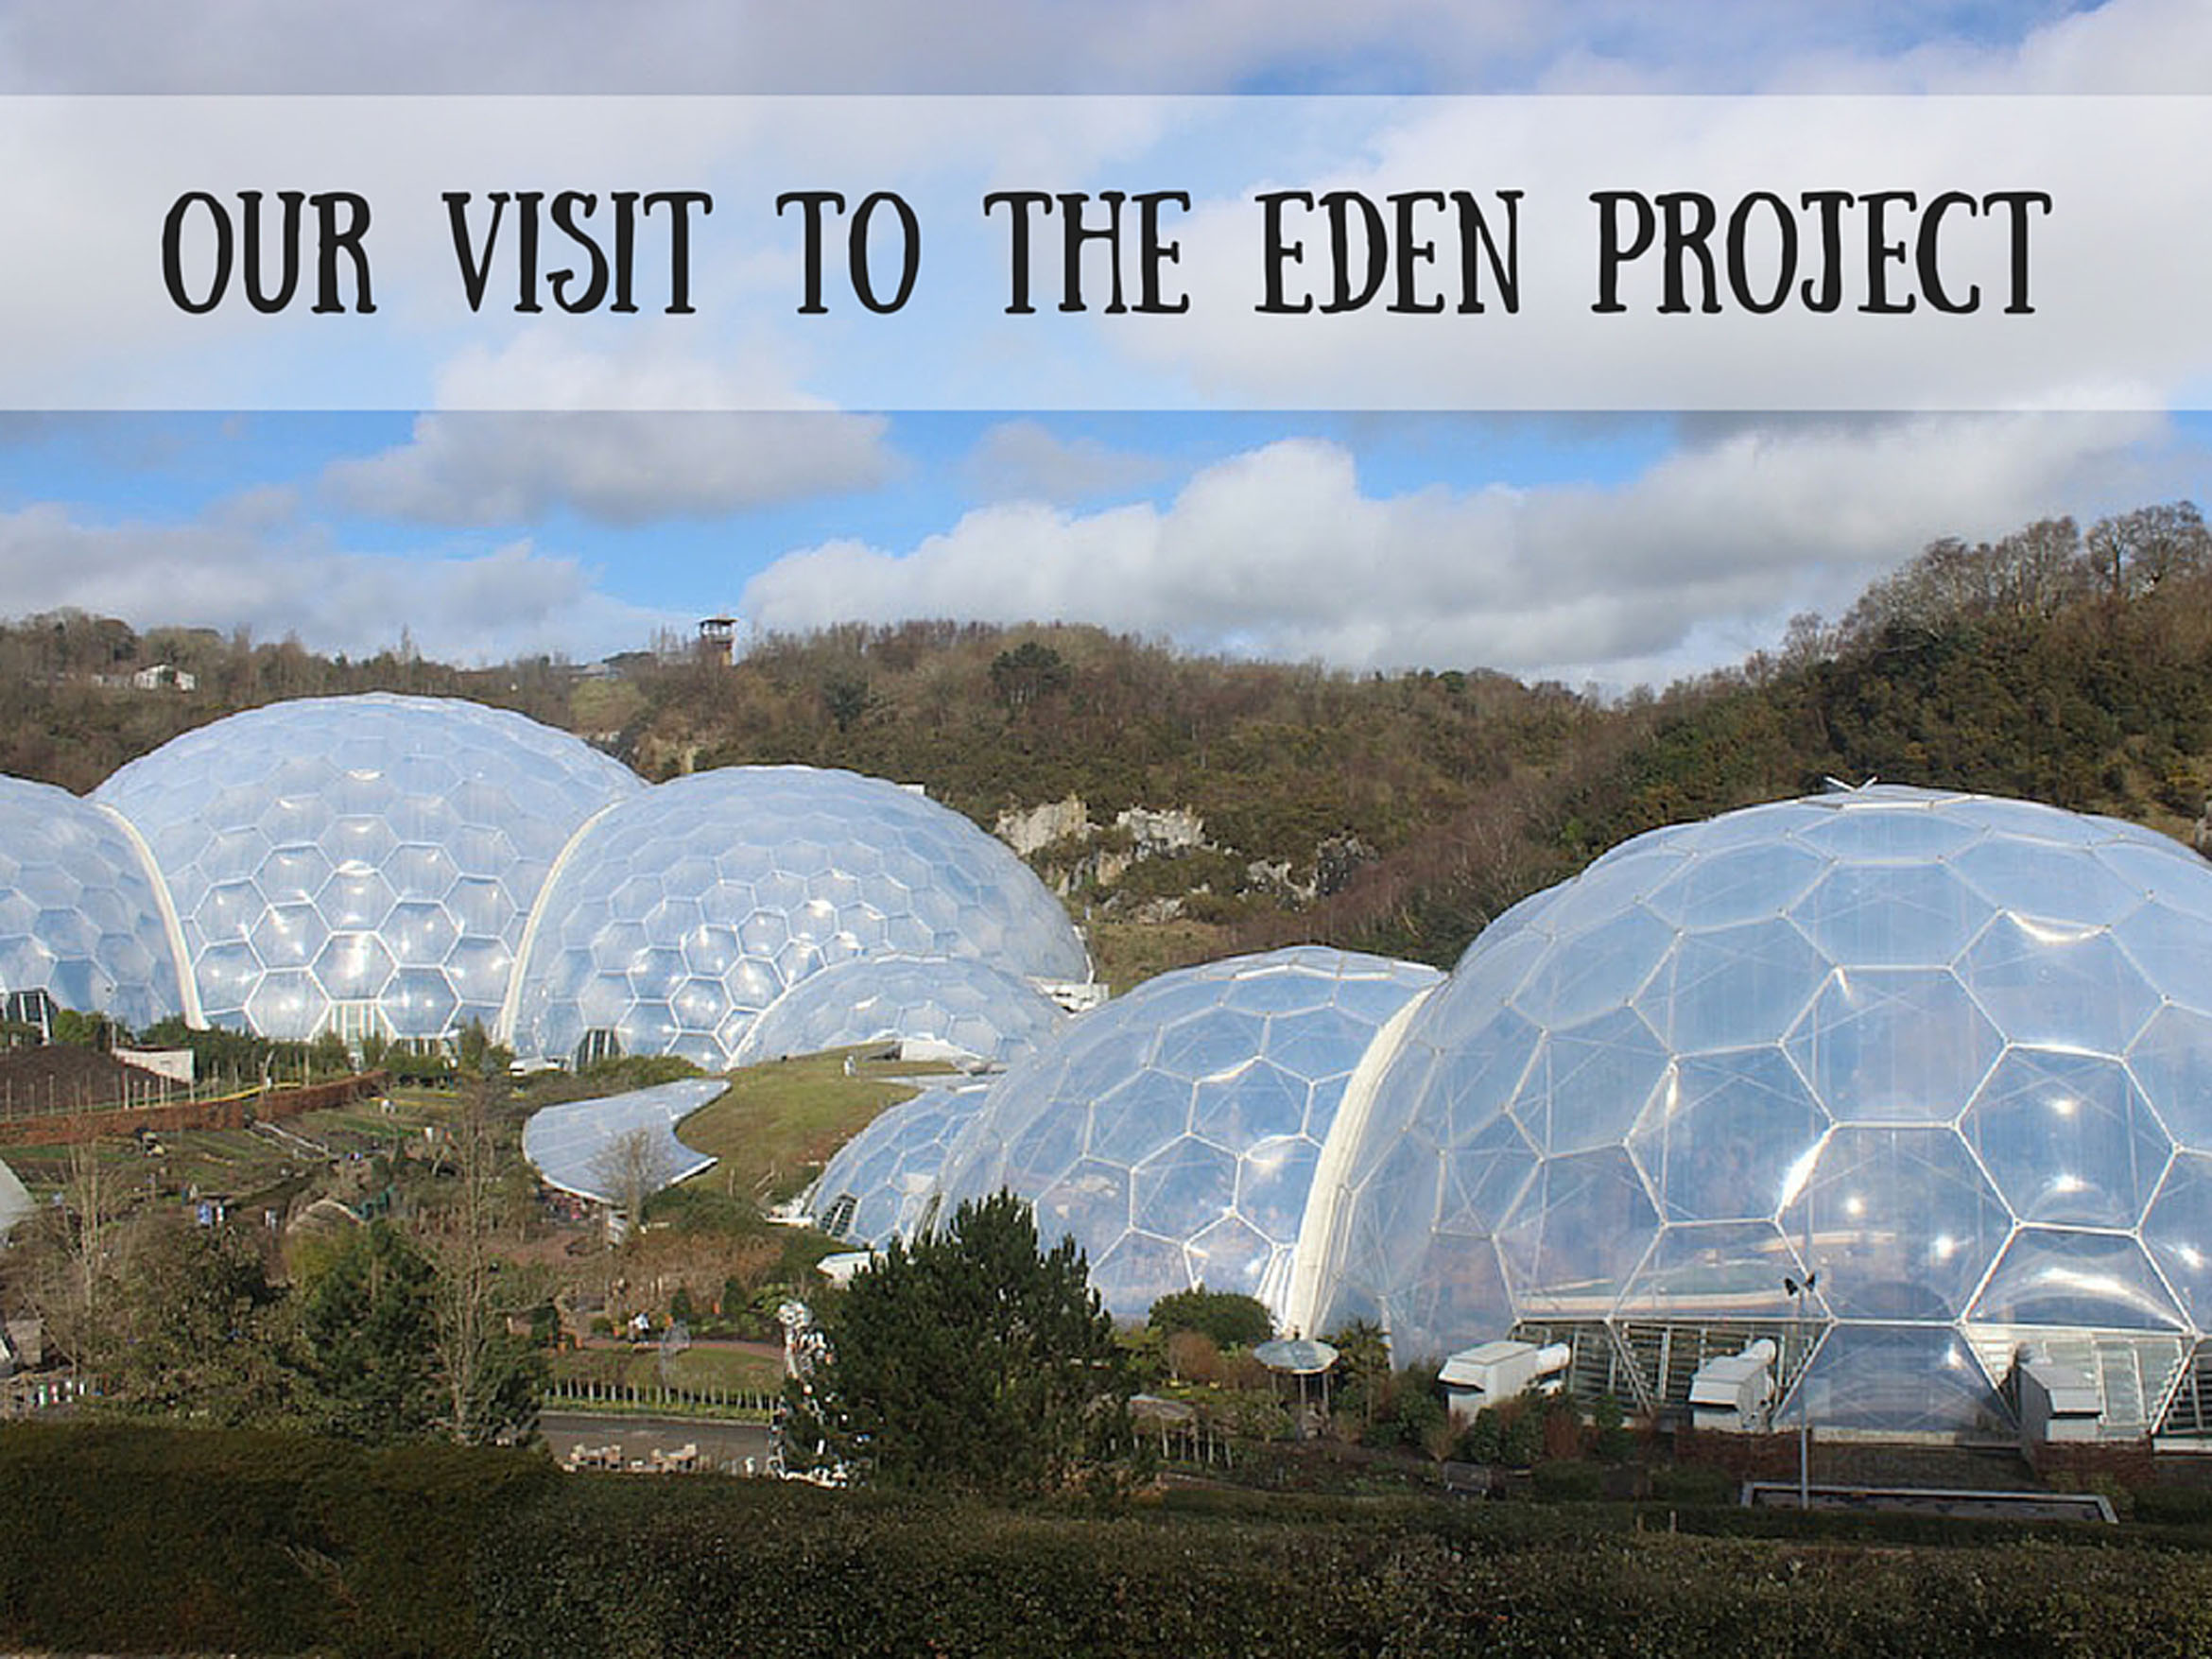 Our Visit to the Eden Project